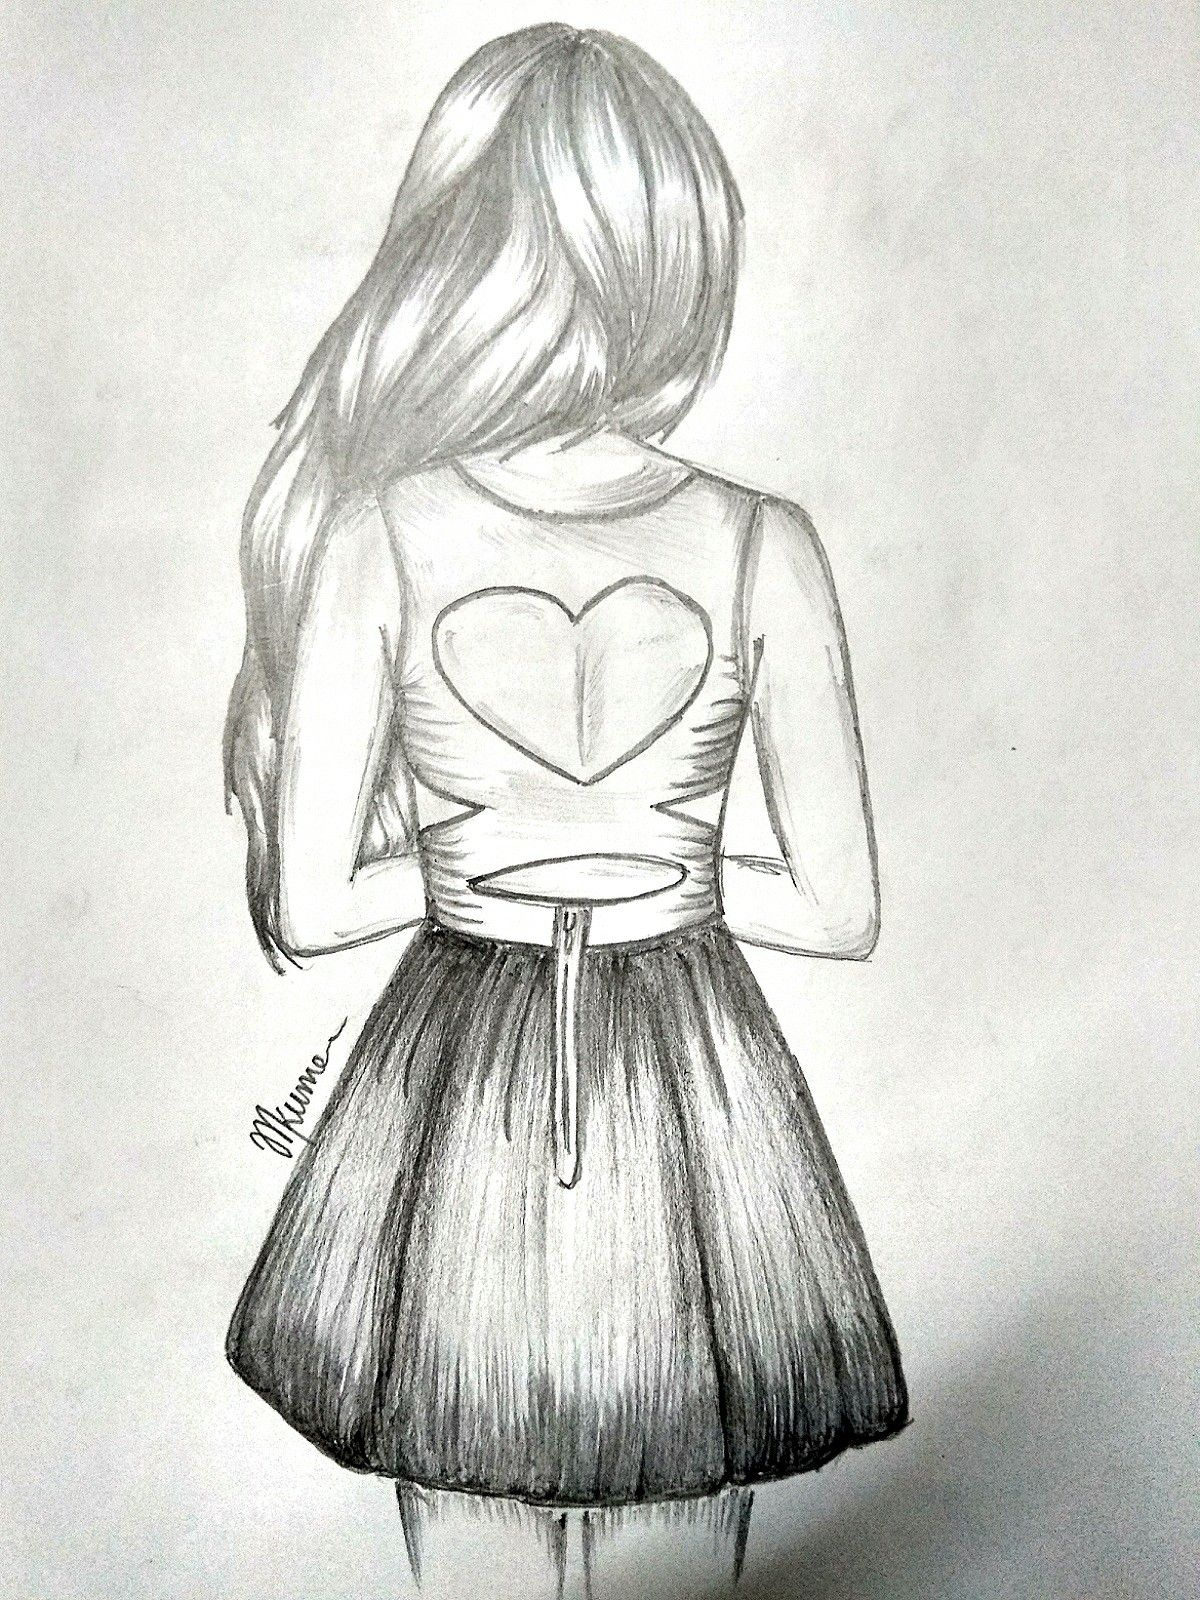 pin manish kumar pencil